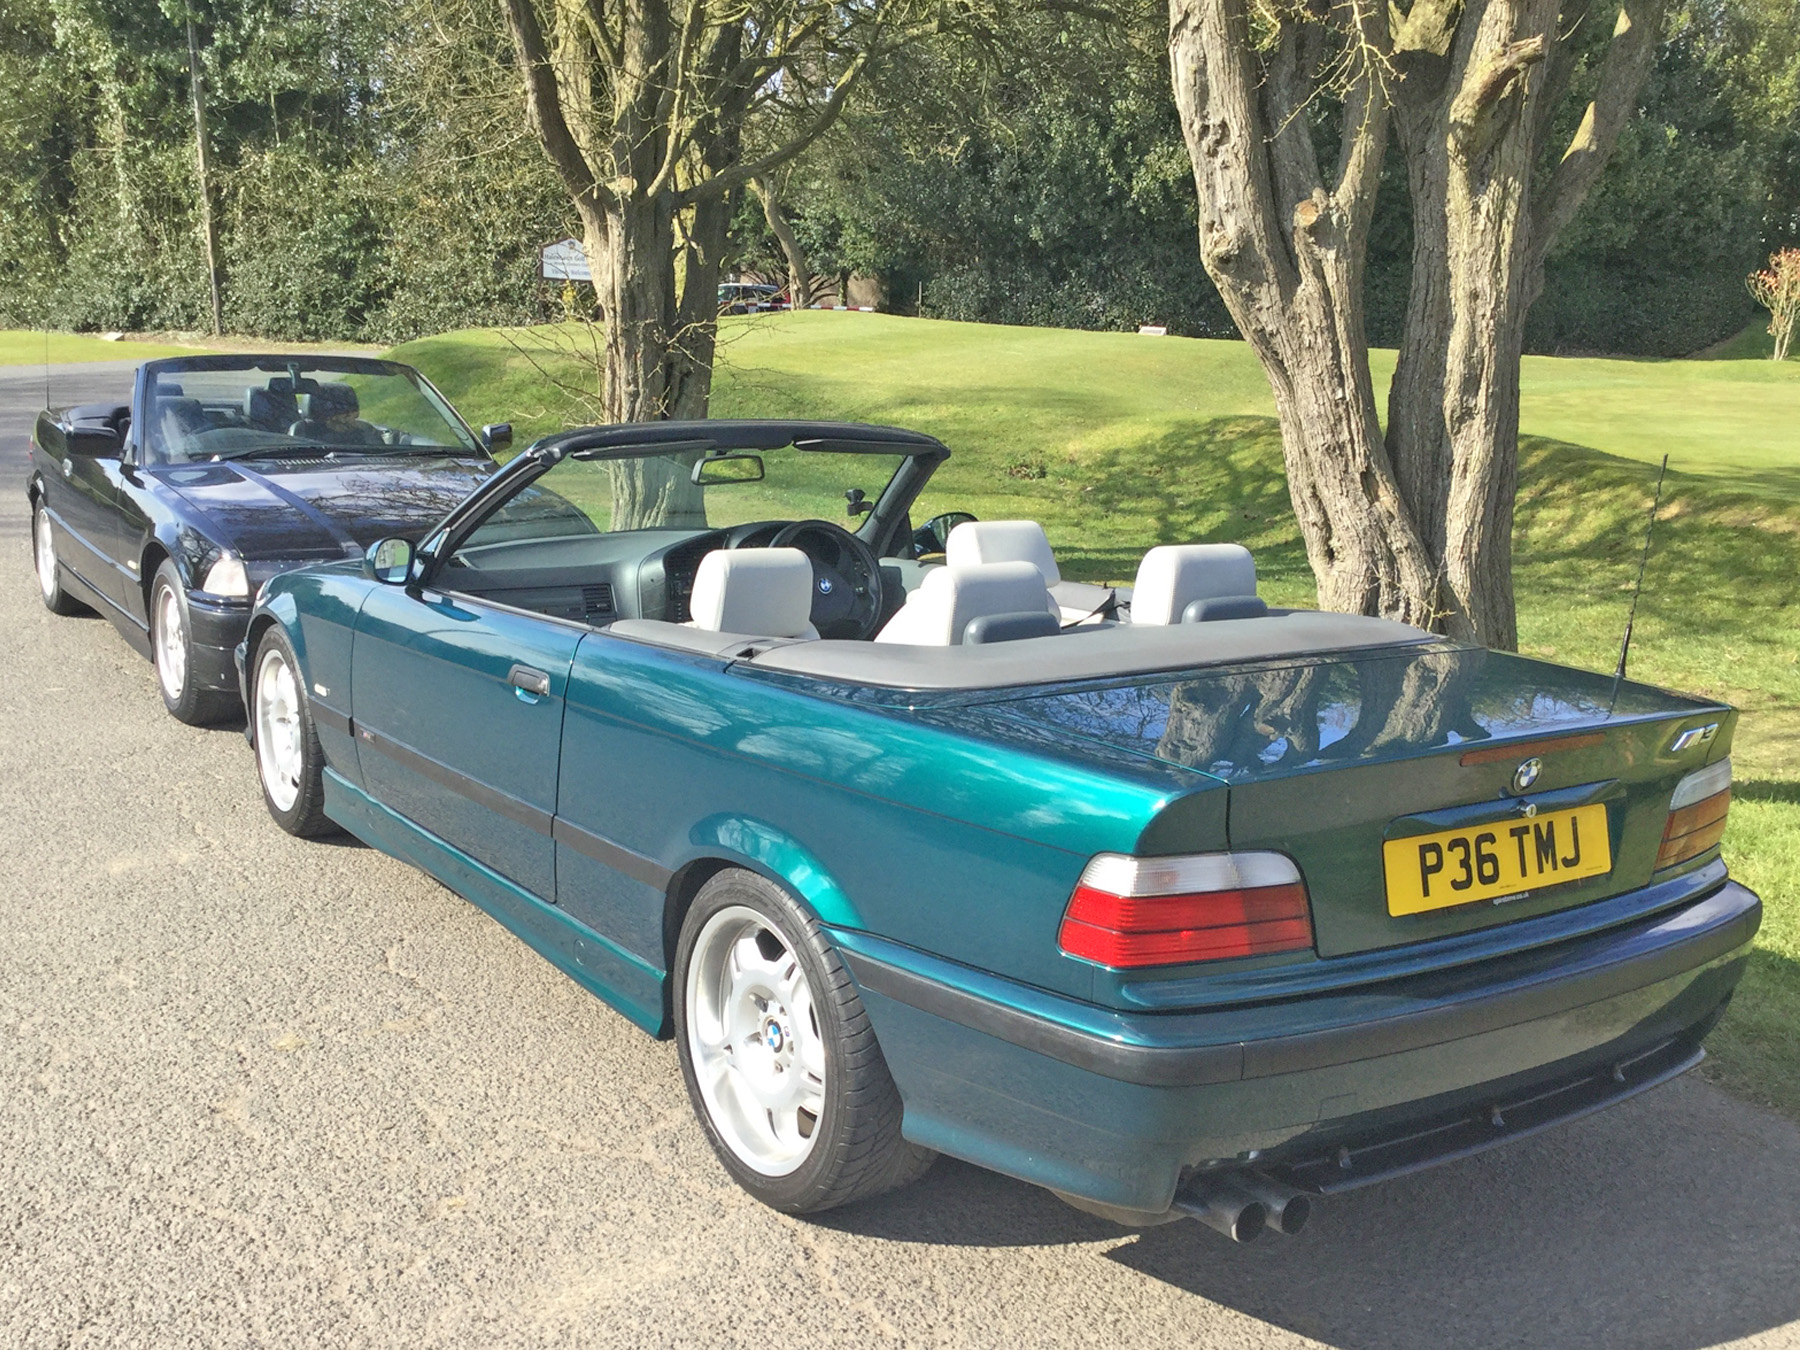 Goodshoutmedia Bmw E36 M3 Convertible Evolution 3 2 Green 0009 Layer 1 Good Shout Media Automotive Marketing Specialist